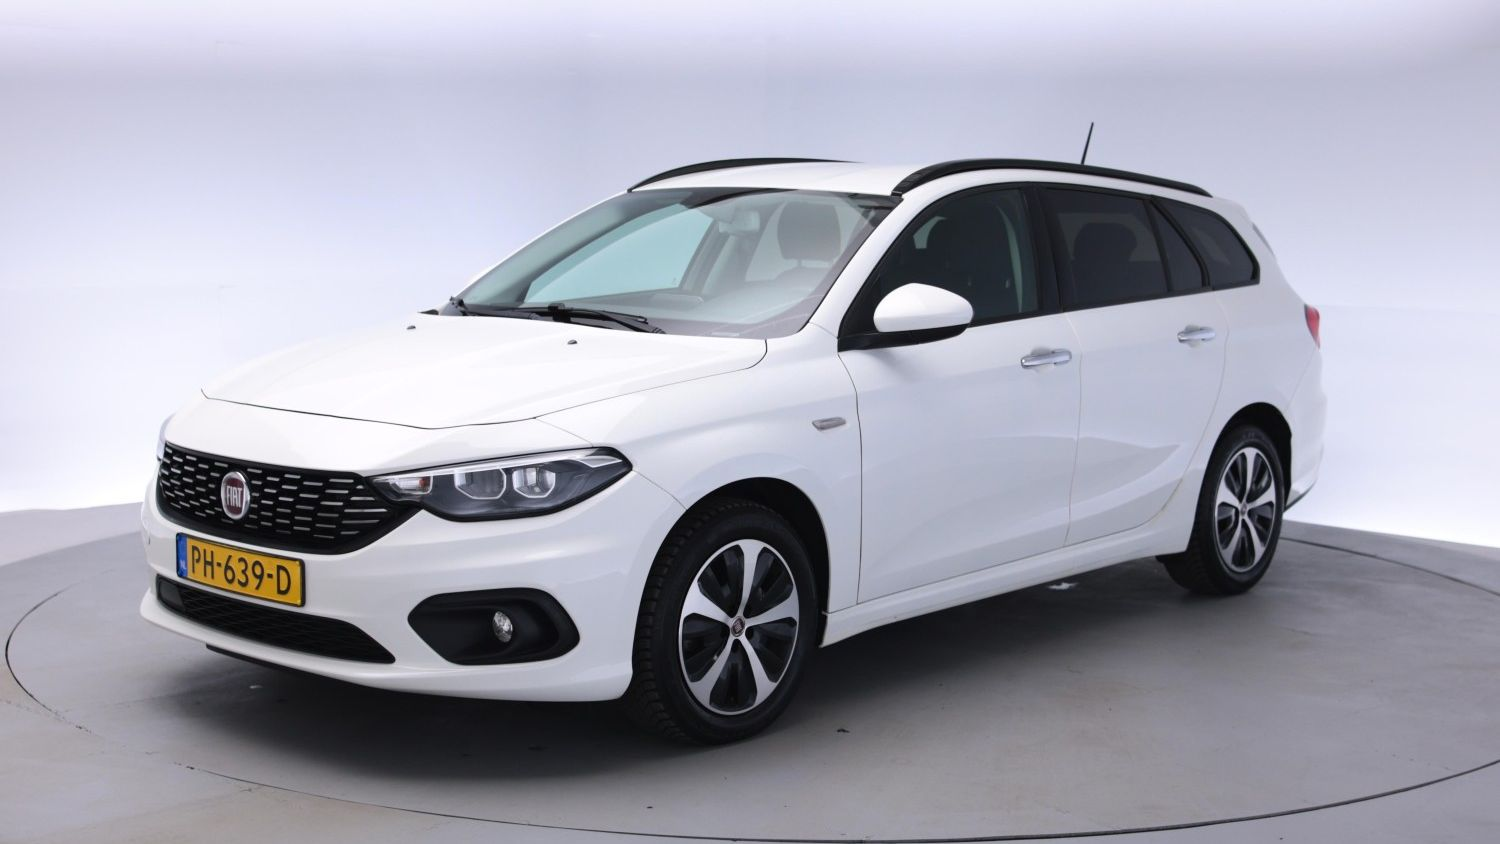 Fiat Tipo Station 2017 PH-639-D 1